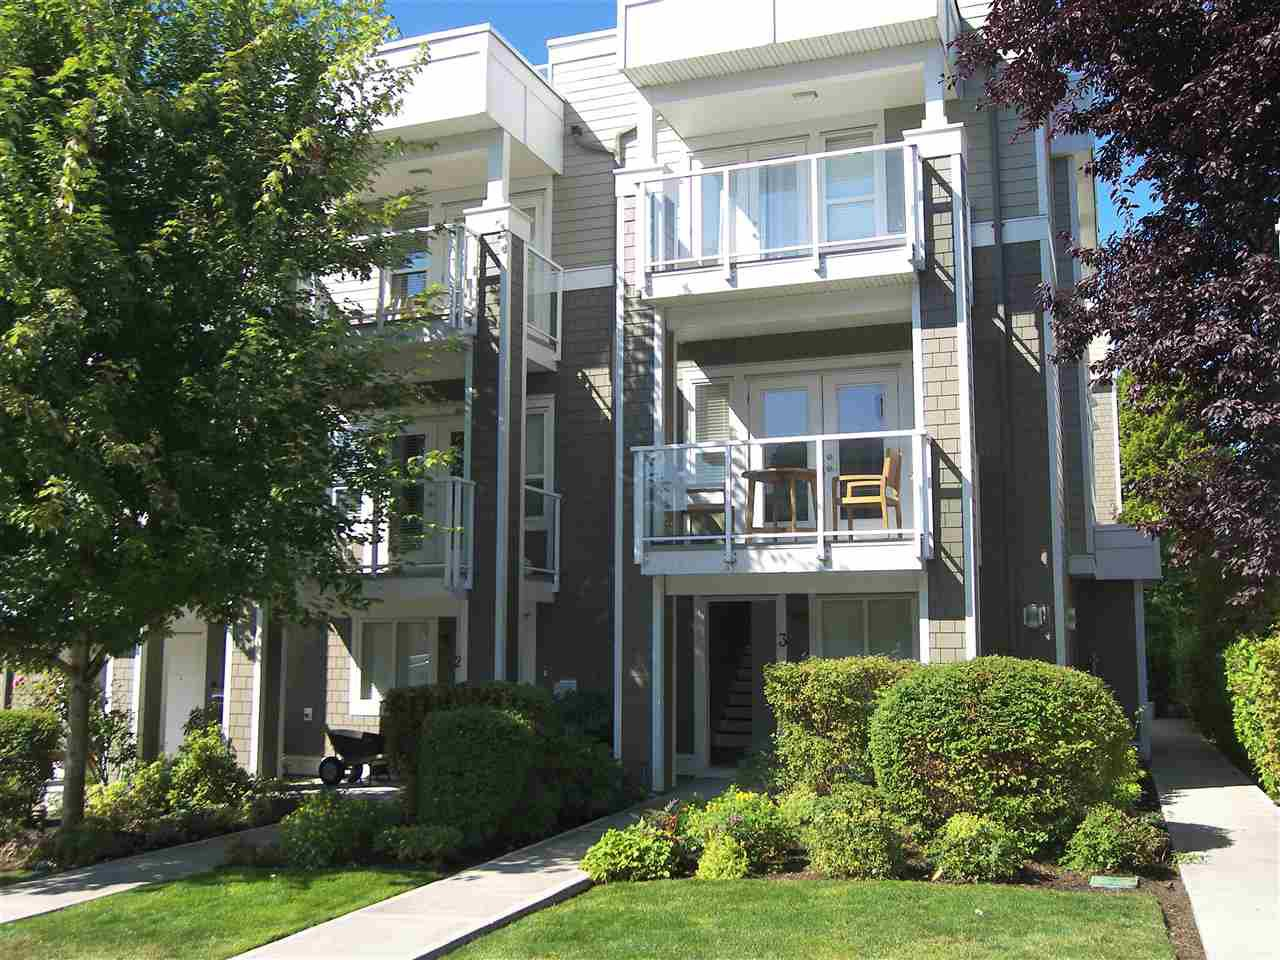 """Main Photo: 3 1321 FIR Street: White Rock Townhouse for sale in """"4 on Fir Street"""" (South Surrey White Rock)  : MLS®# R2480214"""